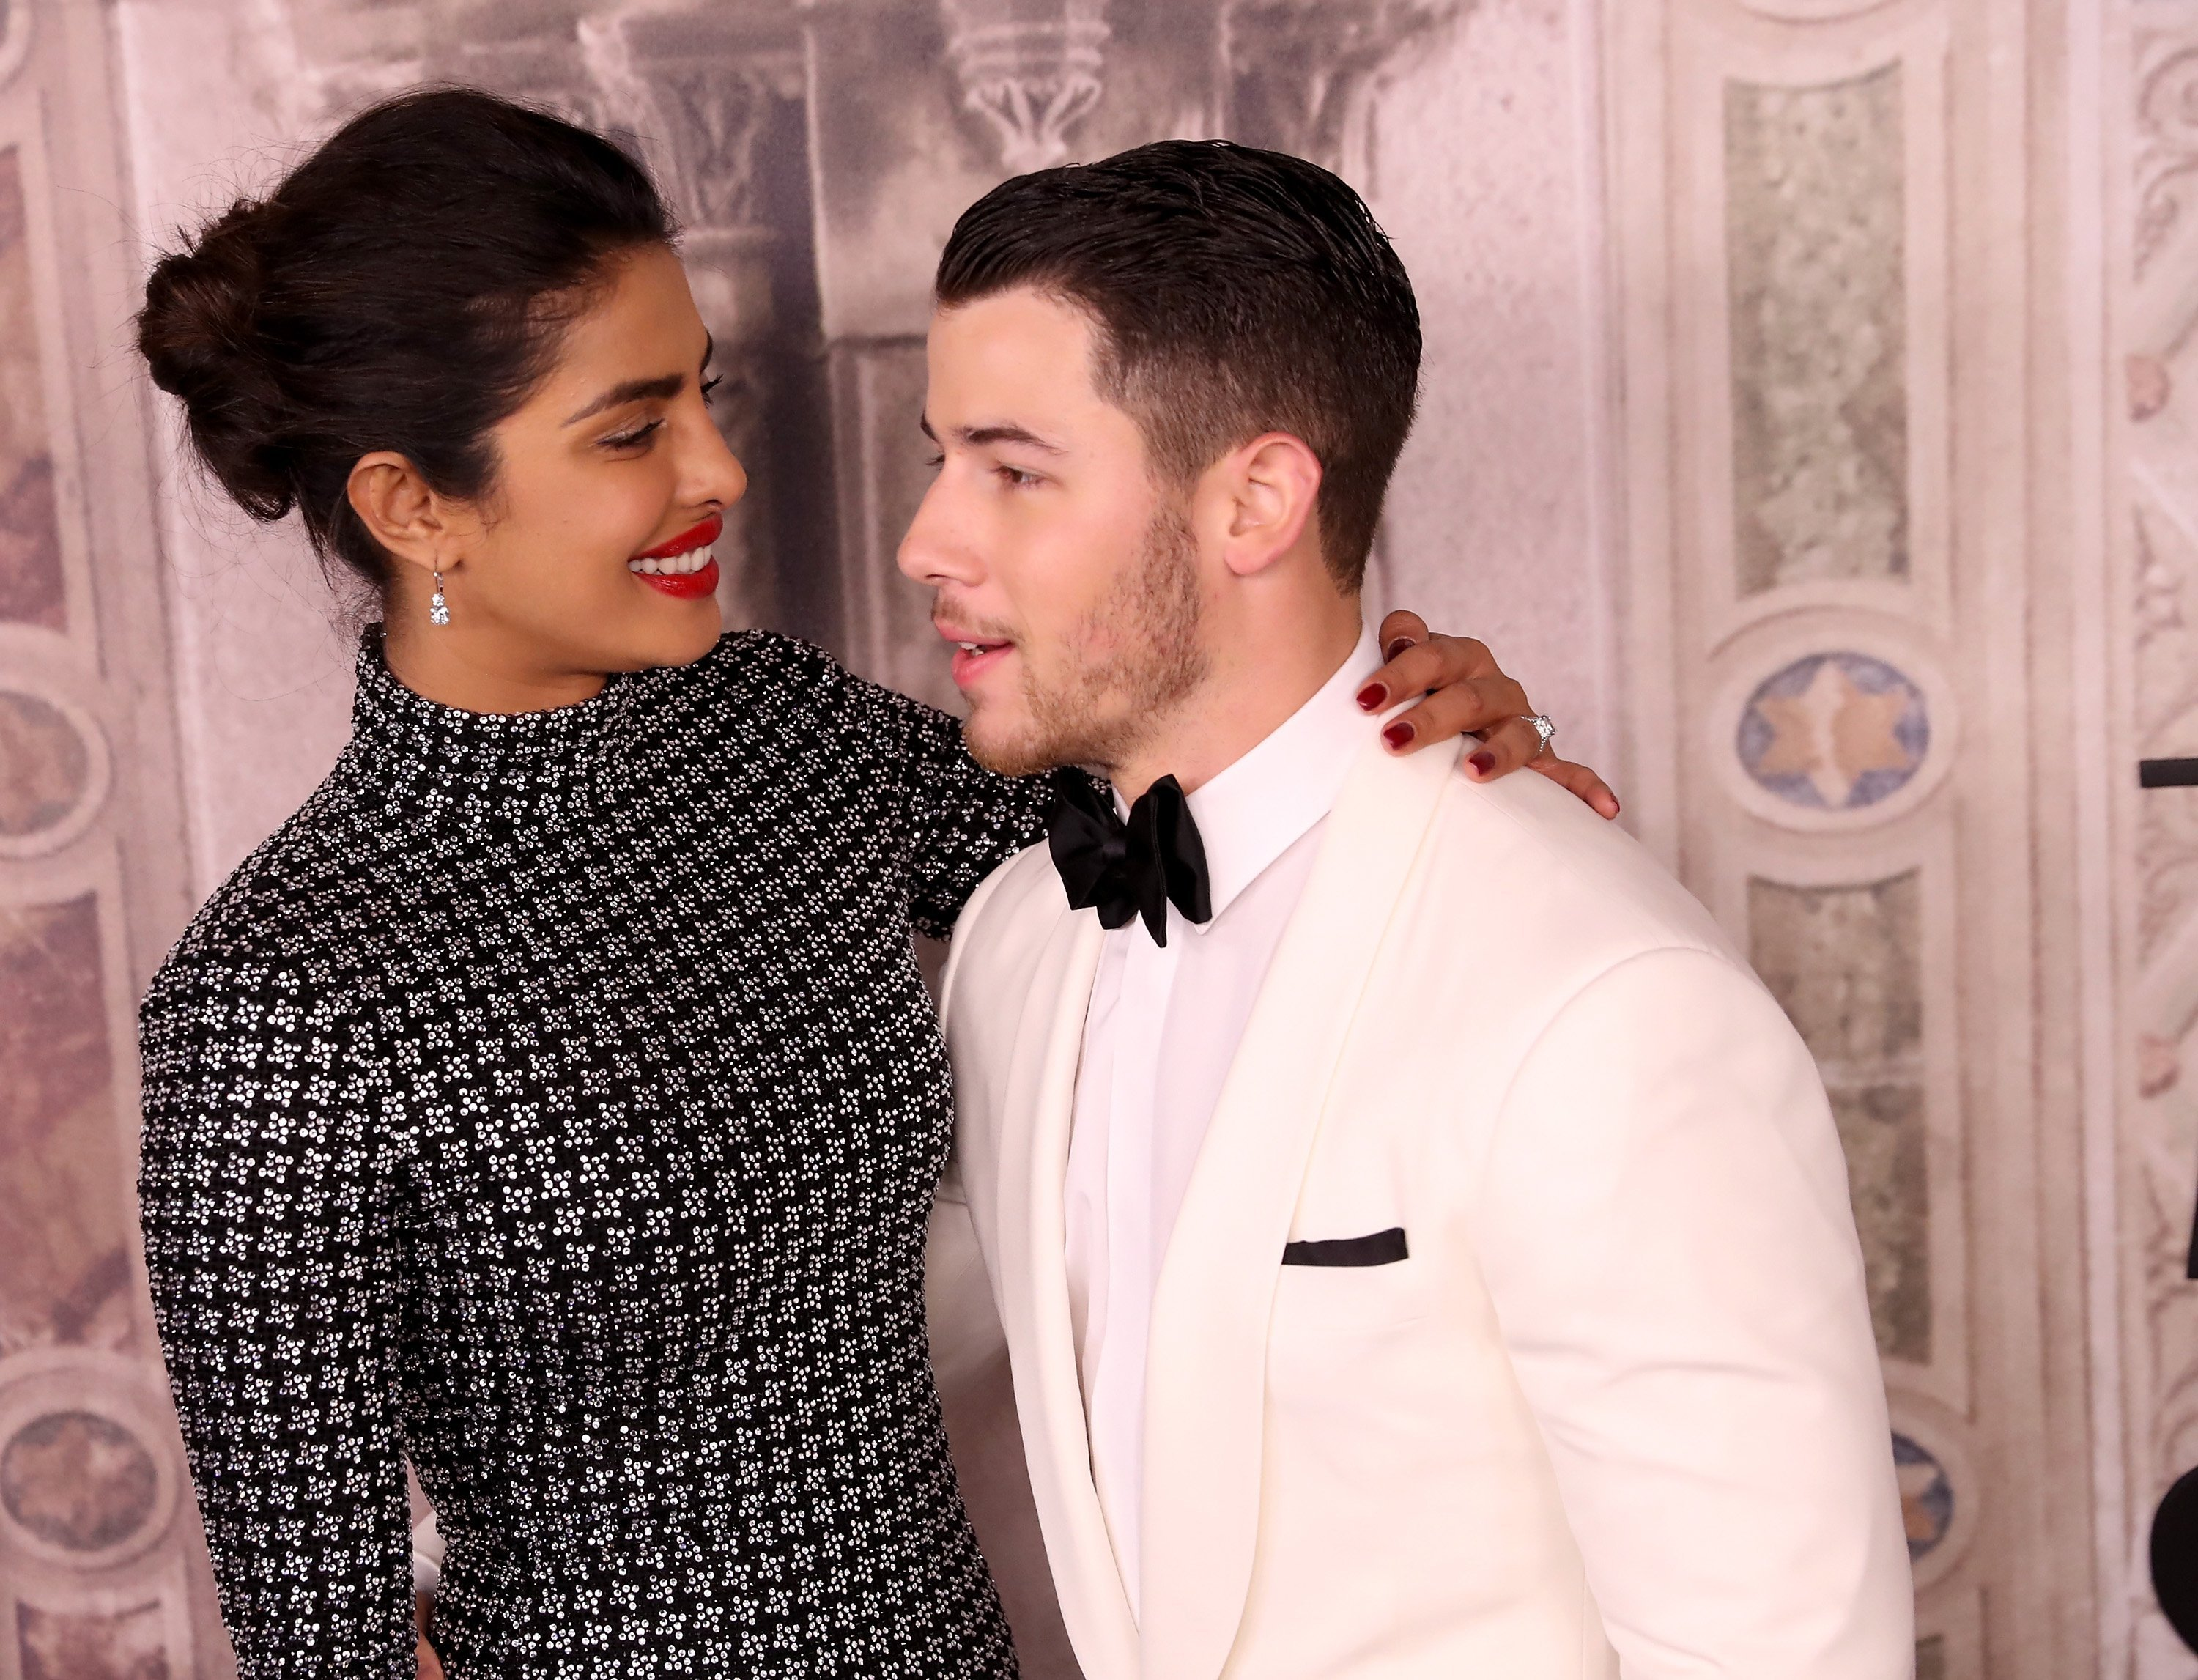 Priyanka Chopra and Nick Jonas attend the Ralph Lauren fashion show during New York Fashion Week in New York City on September 7, 2018 | Photo: Getty Images